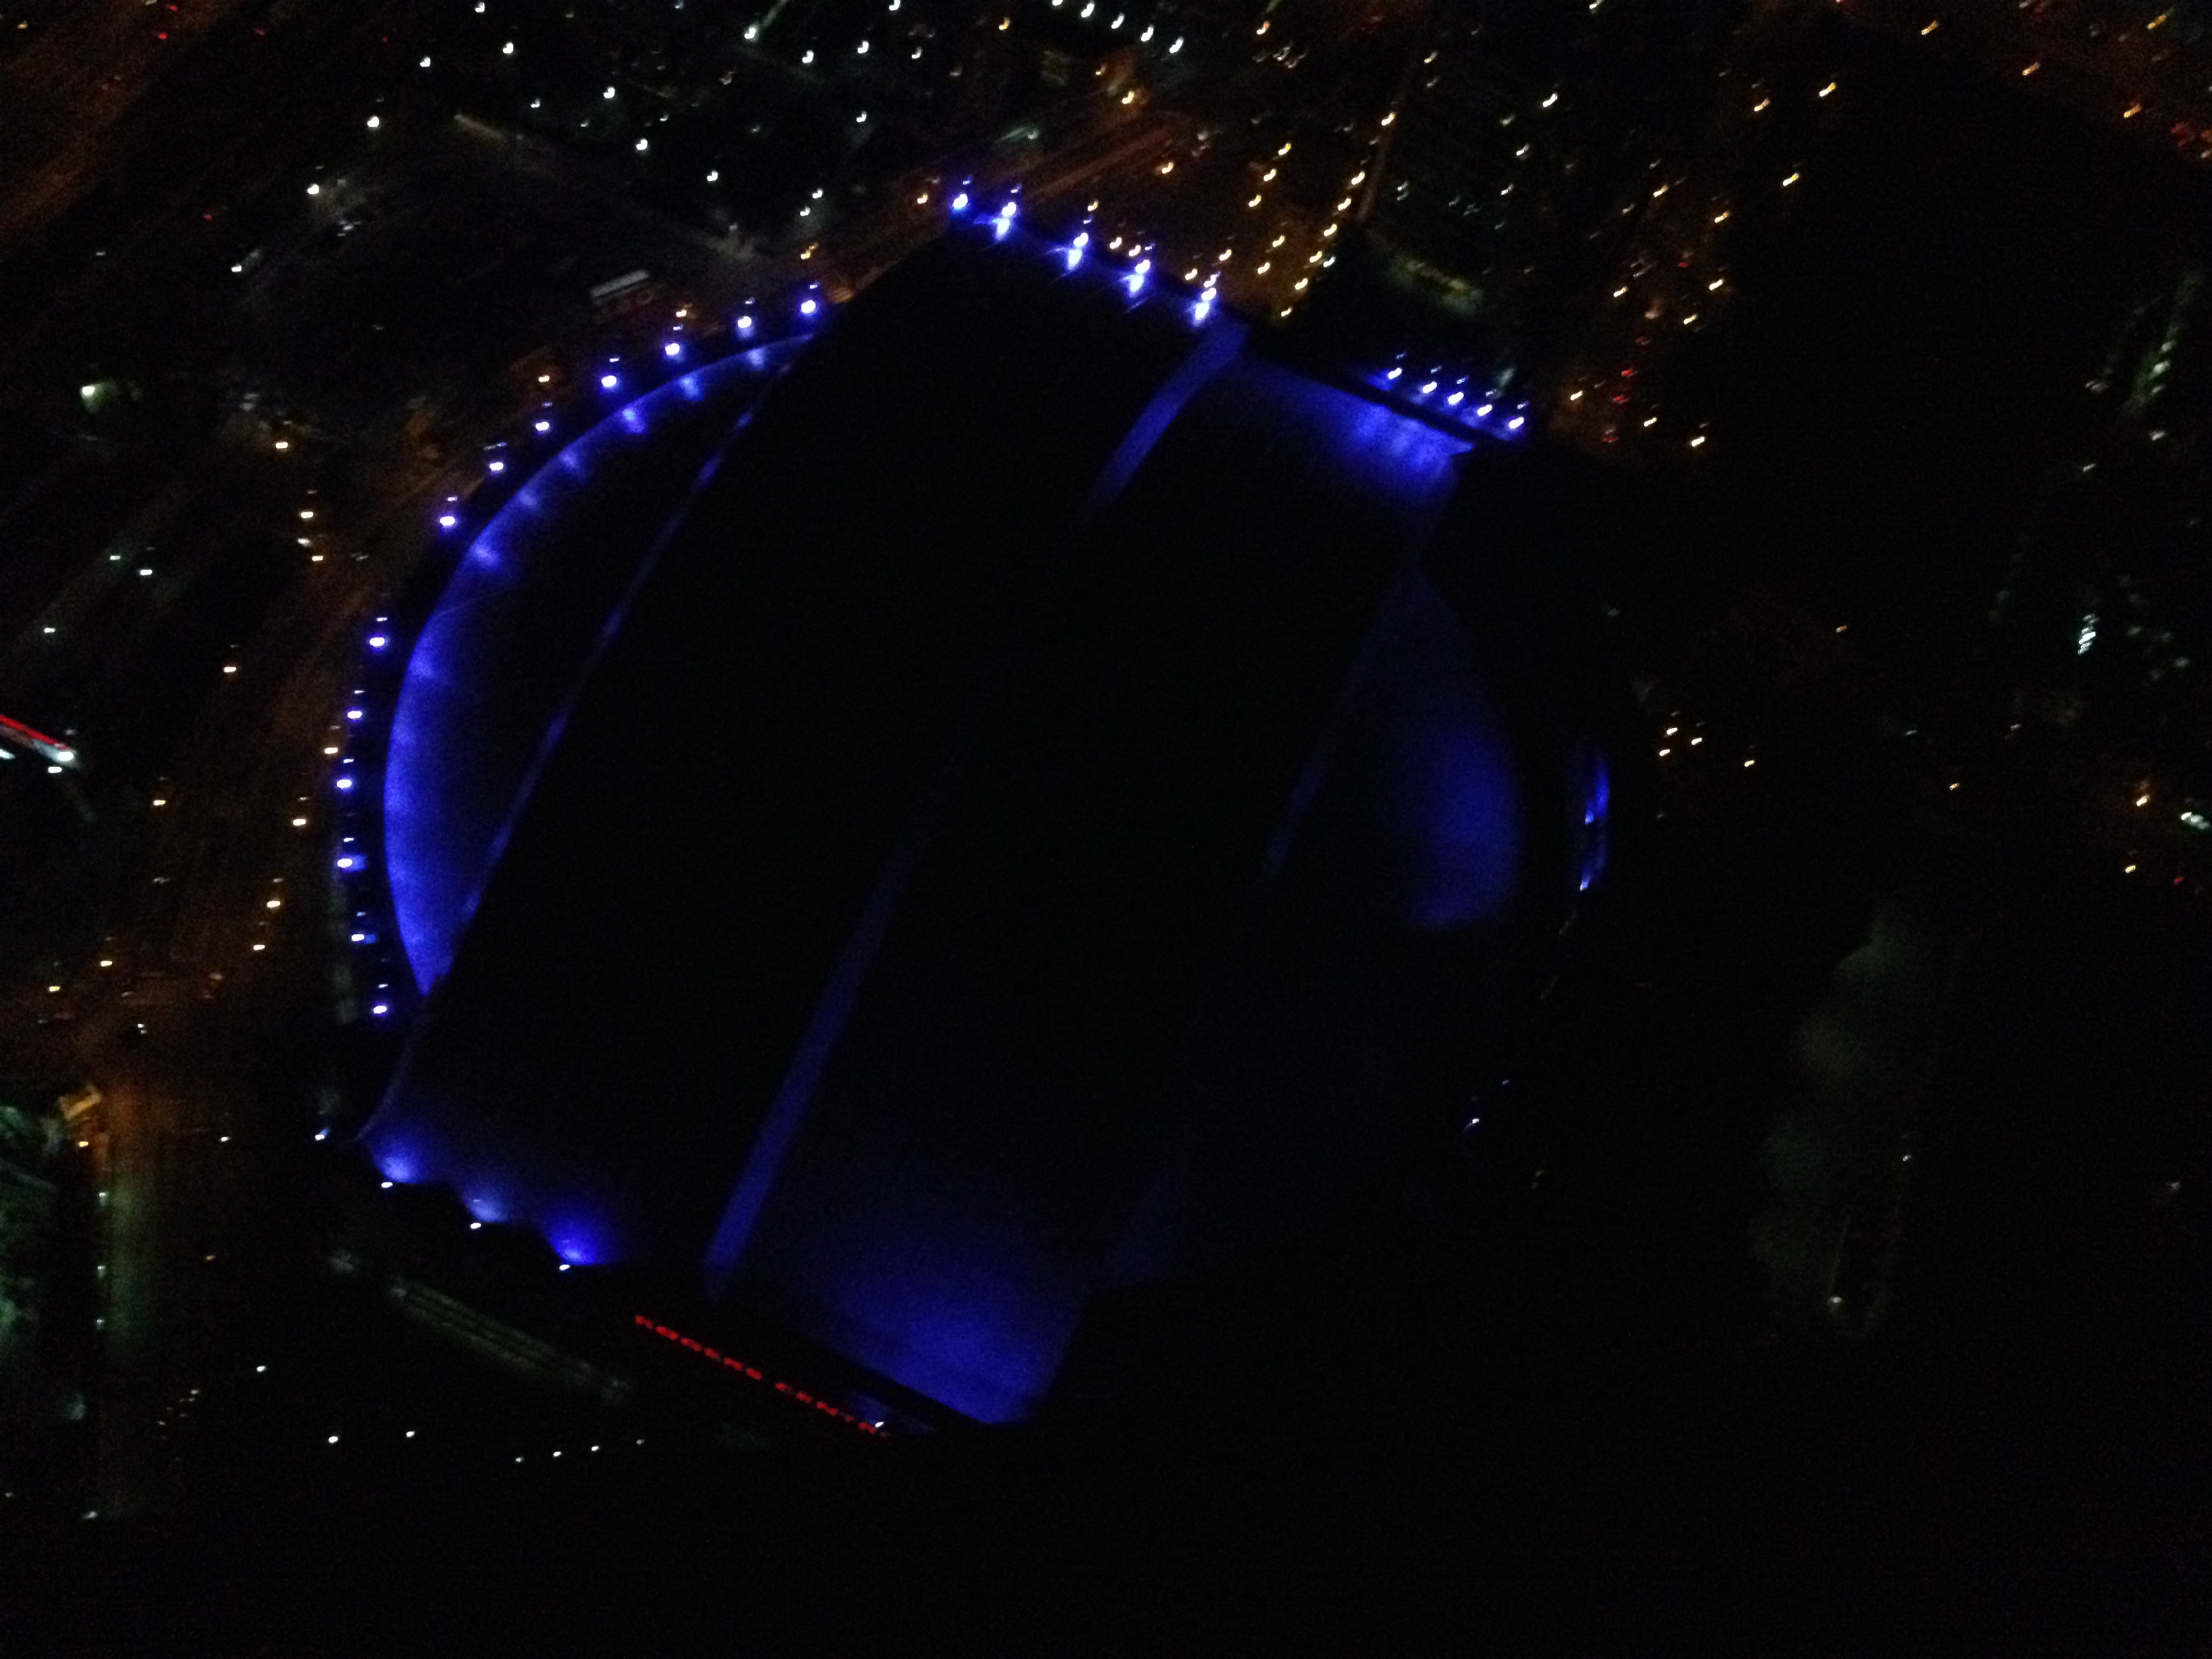 Looking down at the Rogers Centre below!